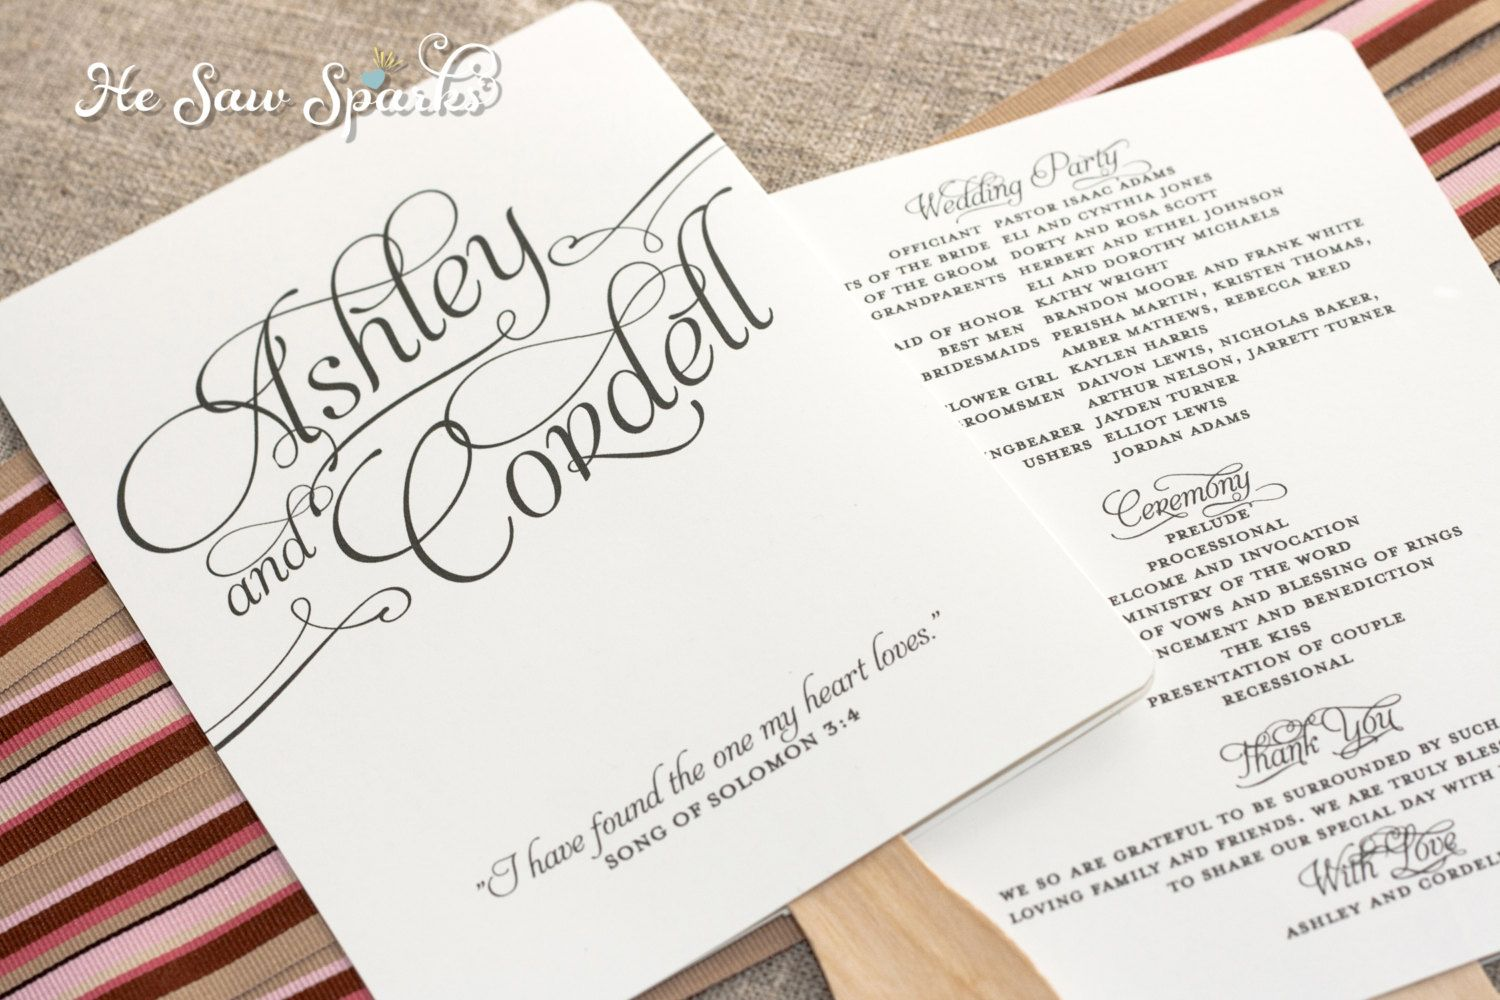 17 Best images about printable wedding programs on Pinterest ...